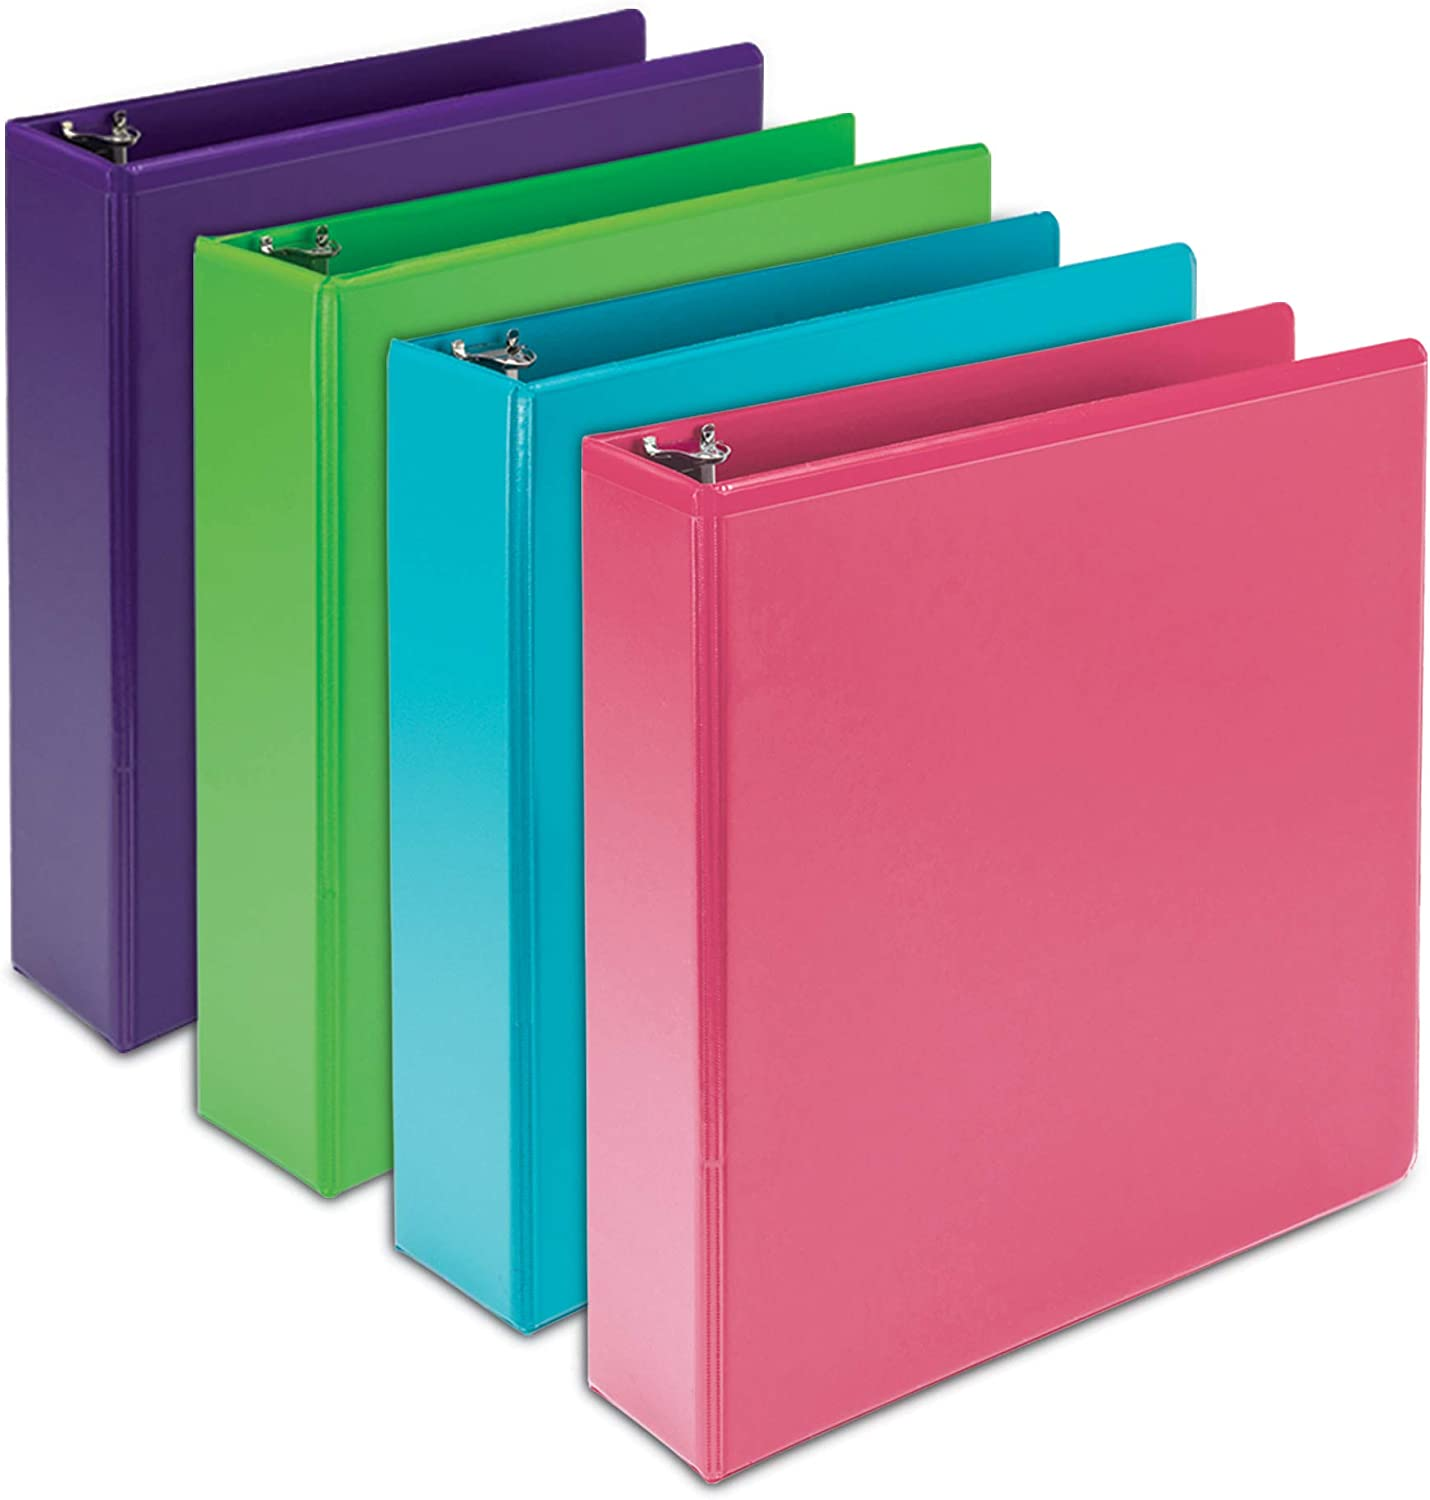 Samsill Earth's Choice Biobased Durable 3 Ring Binders, Fashion Clear View 2 Inch Binders, Up to 25% Plant Based Plastic, Assorted 4 Pack